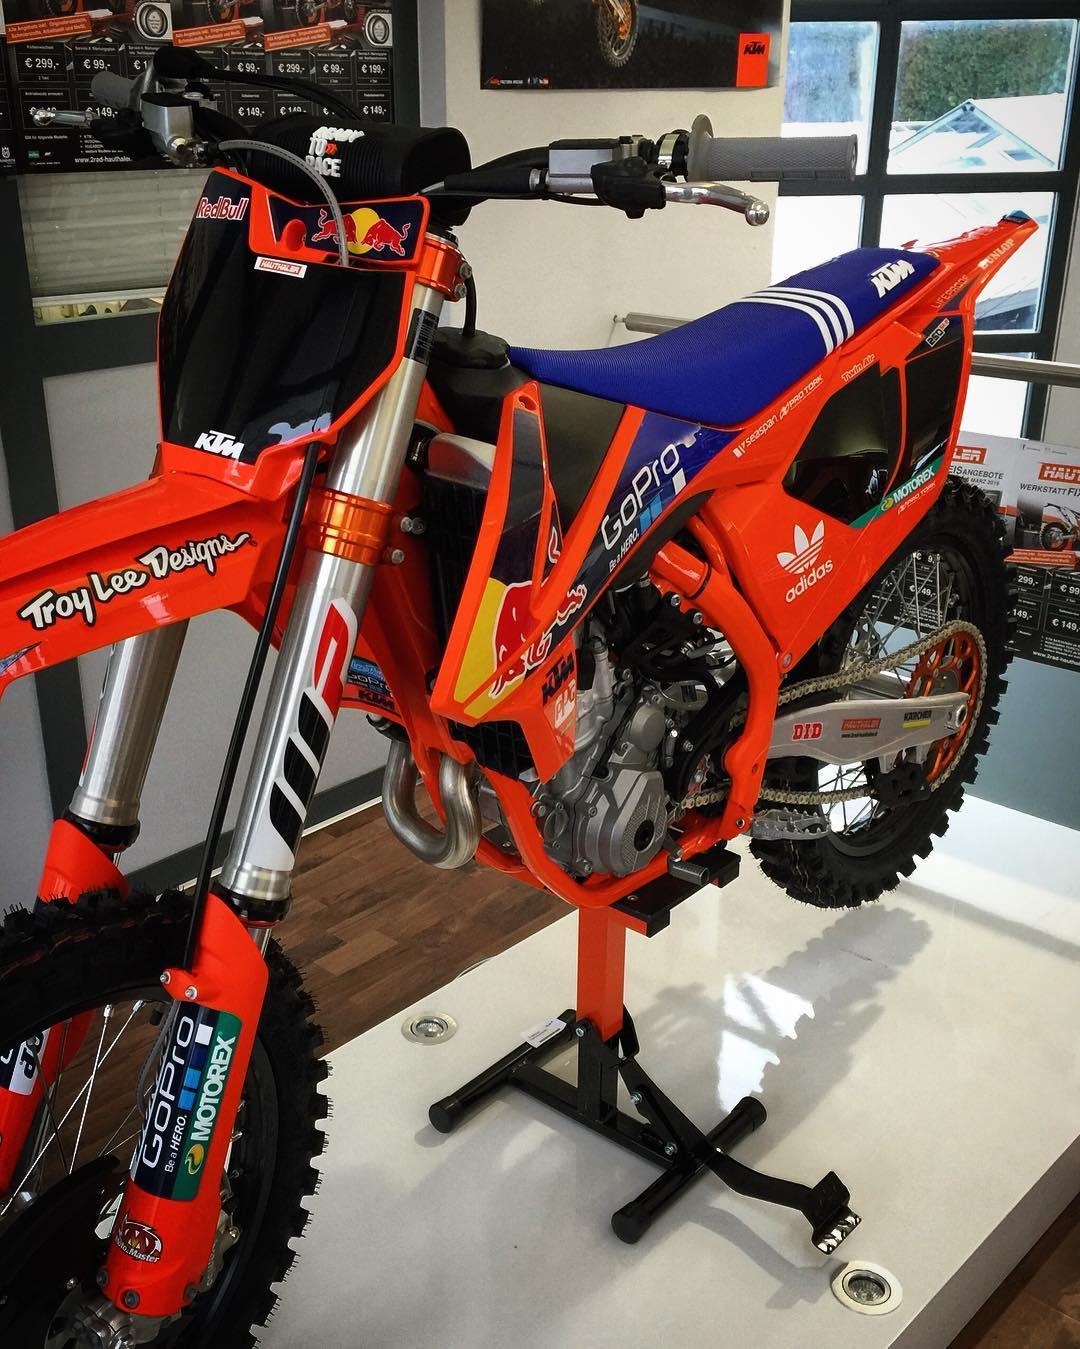 Other side of the @tld_moto #KTM #250sxf sitting @ktmsalzburg  #moto